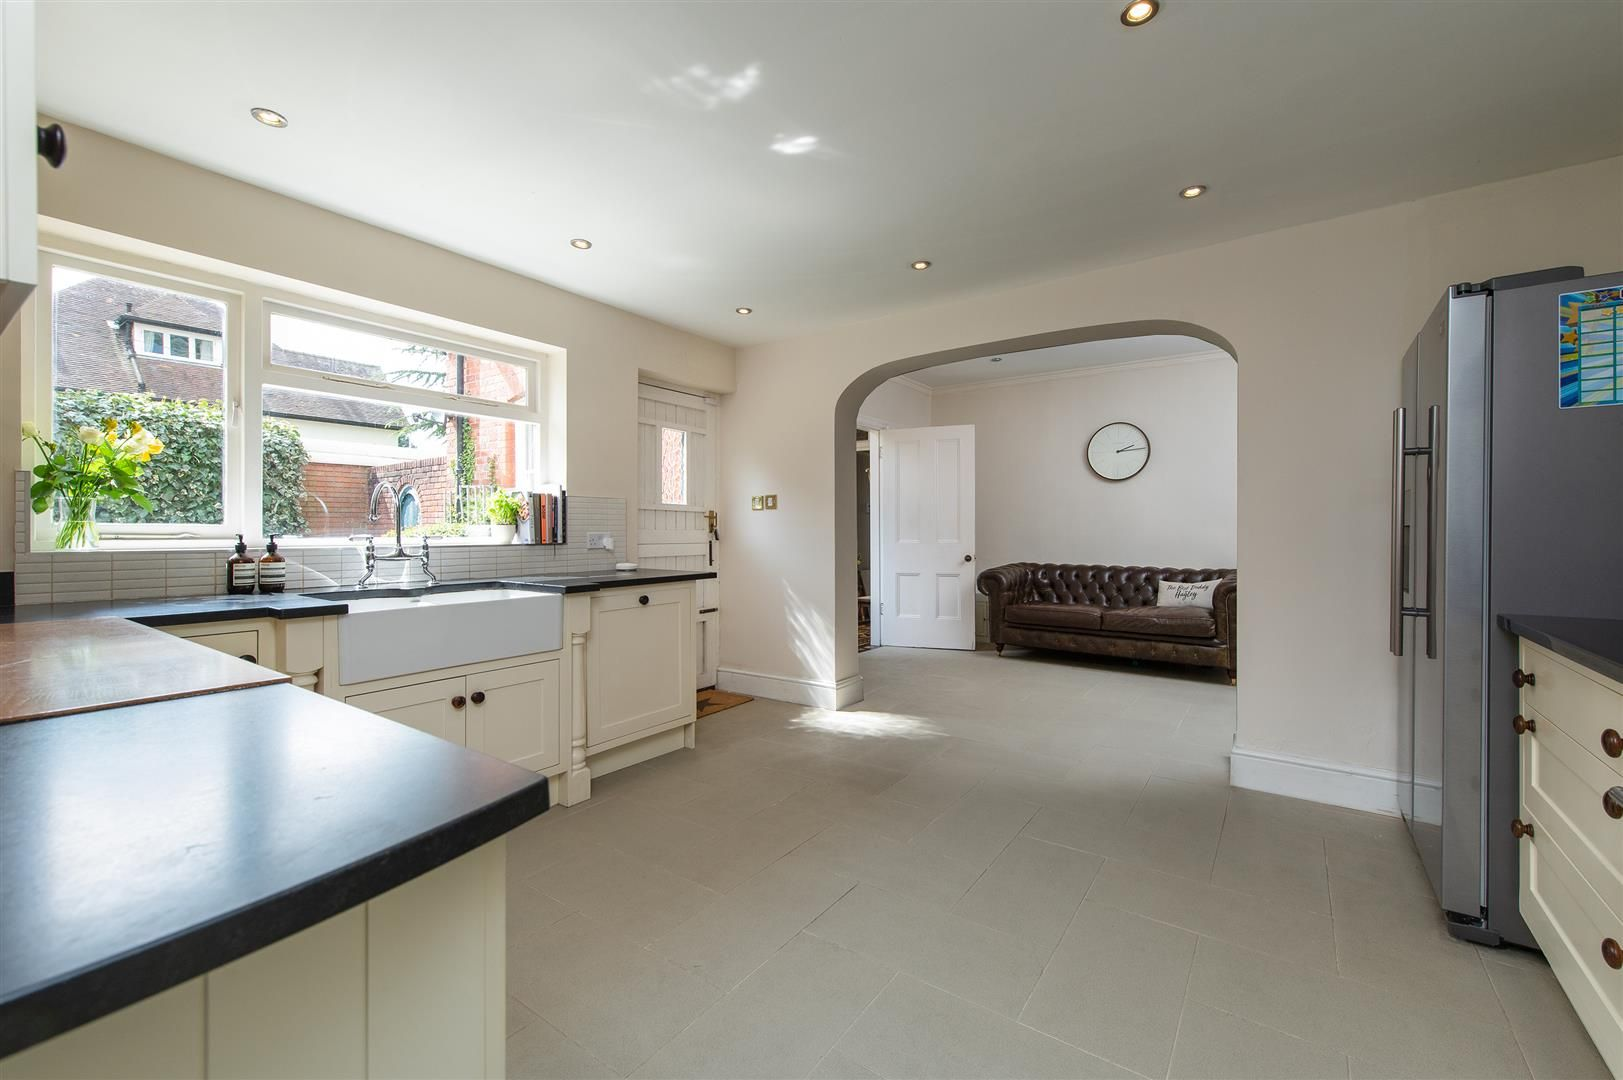 4 bed detached for sale in Hagley 18